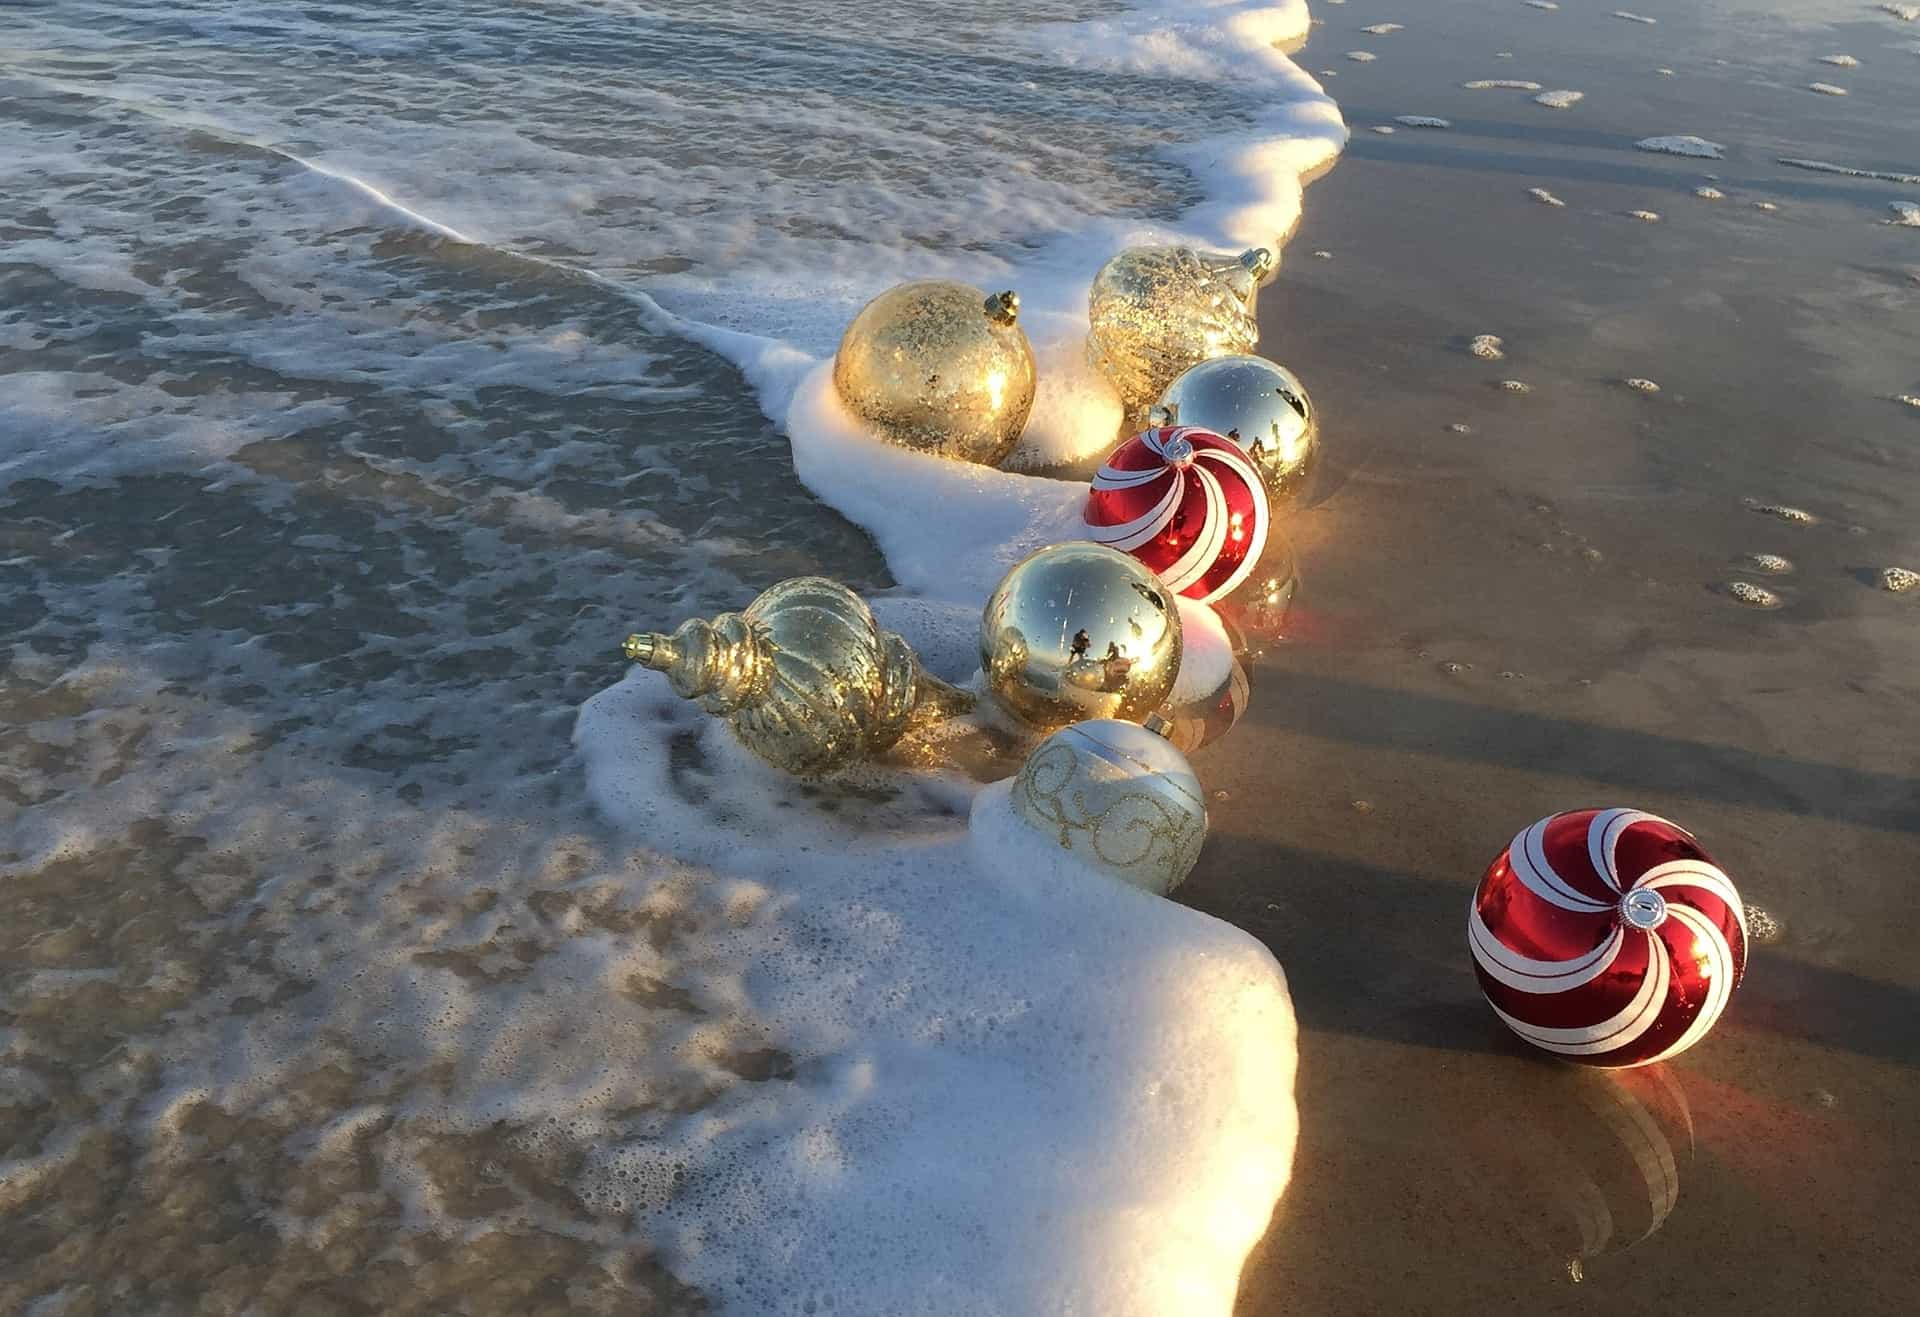 christmas ornaments washing up in the waves of a beach